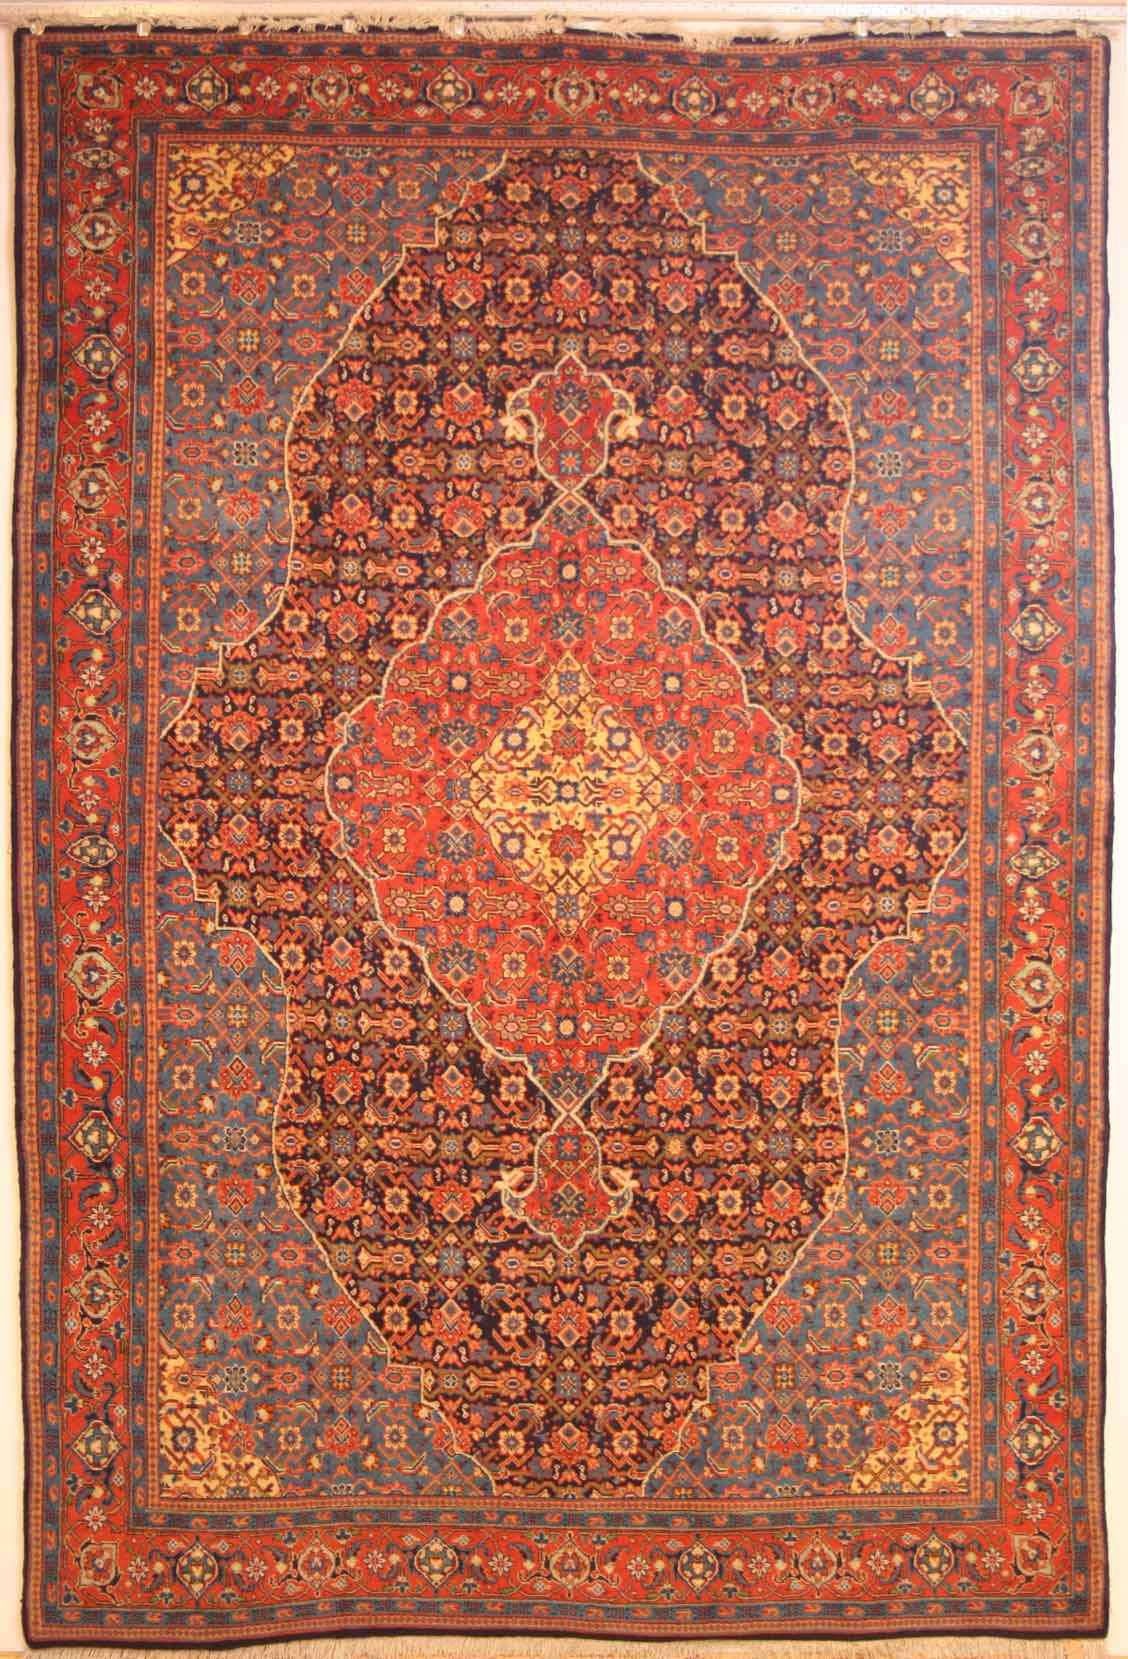 Persian Tabriz Hand Knotted Rug Wool On Cotton Id 301 Gabbeh Art In Art